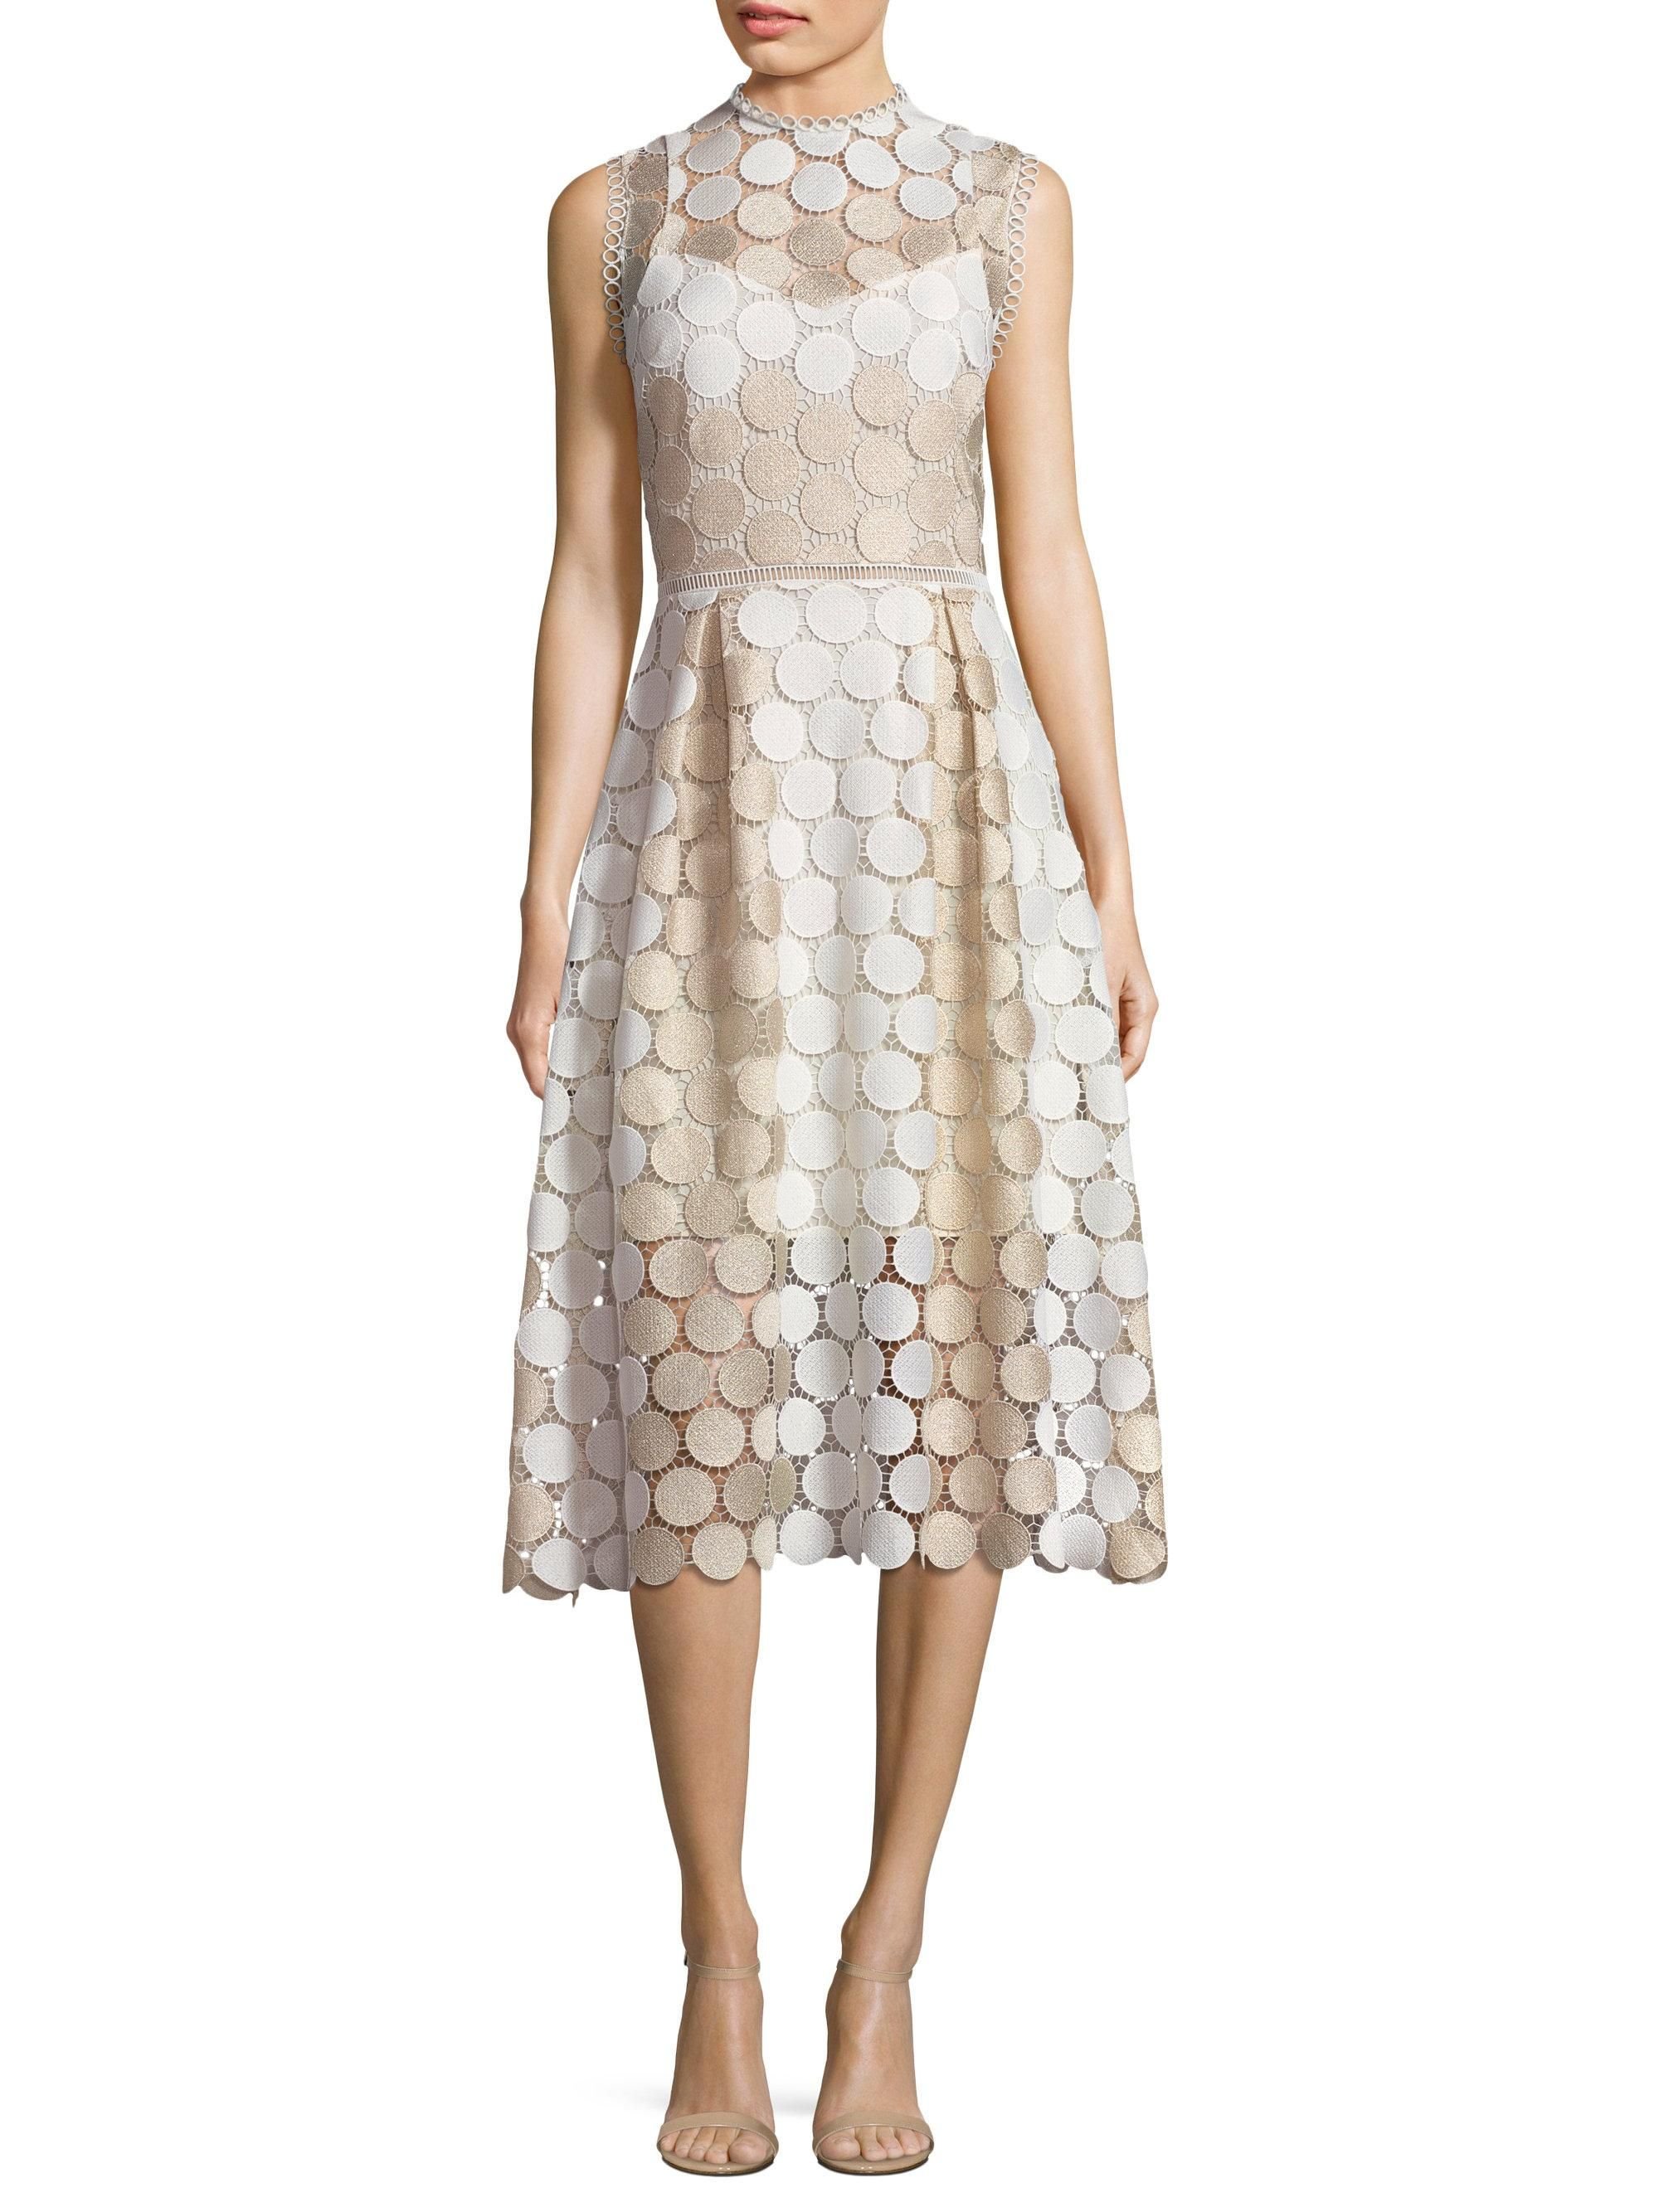 Image result for shoshanna circle gold lace dress in my closet